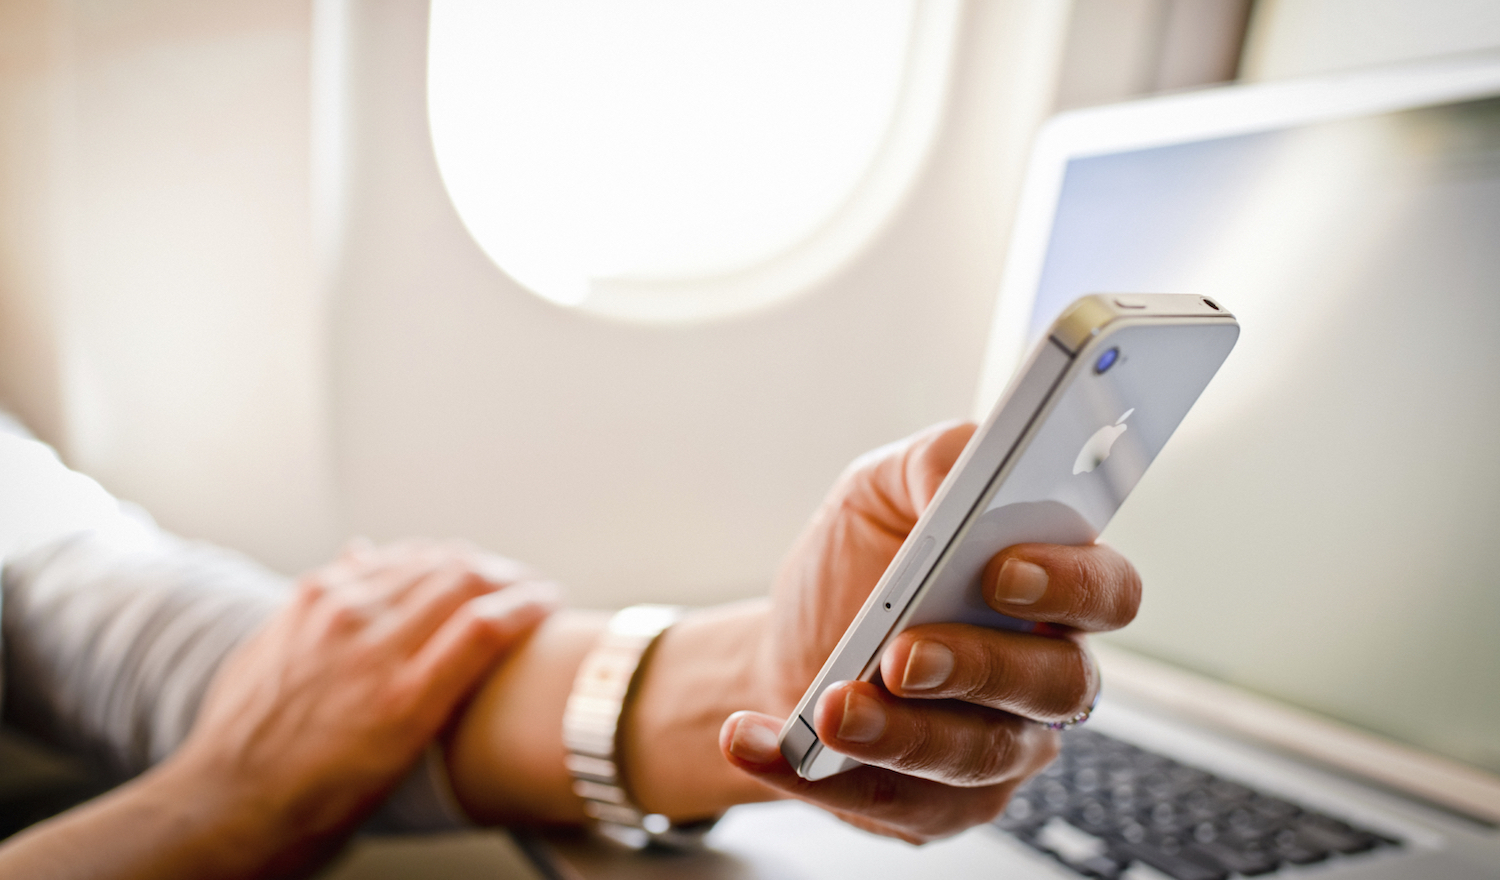 How to track flights on your iPhone without third party apps